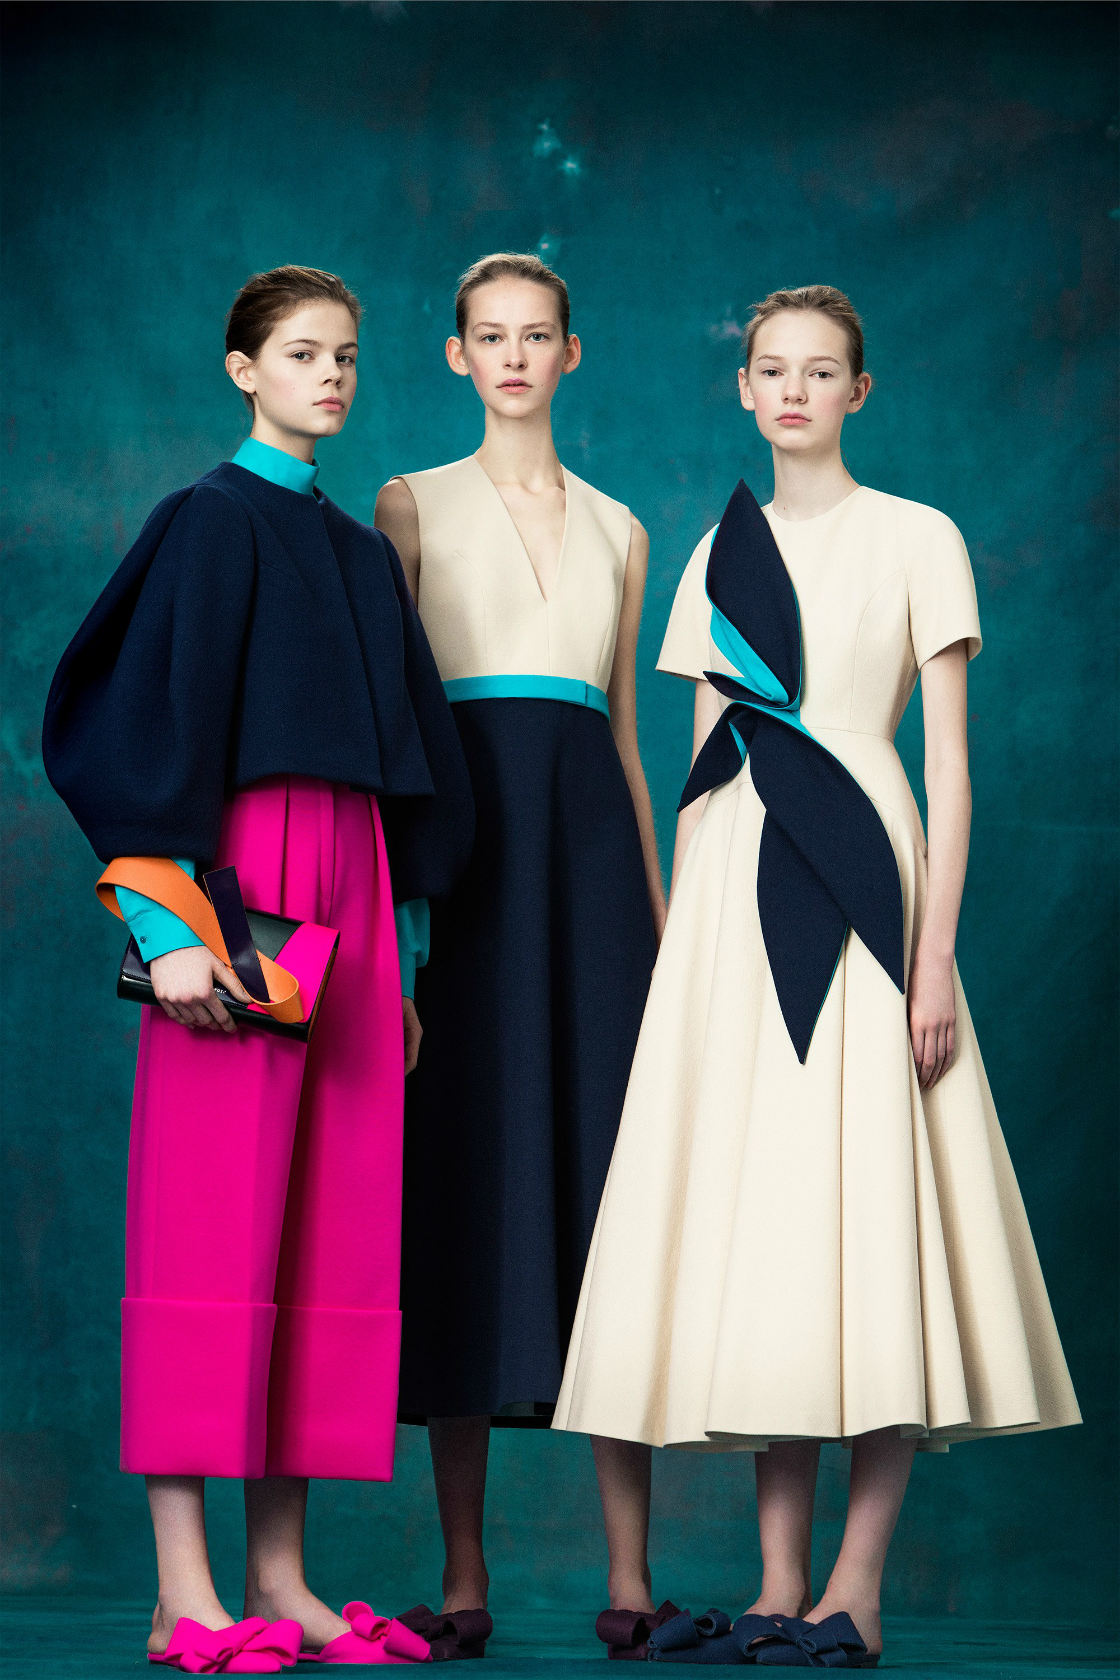 5 Spanish Fashion Brands That You Should Know Spanish Fashion Brands 5 Spanish Fashion Brands That You Should Know 01 delpozo pre fall 2017